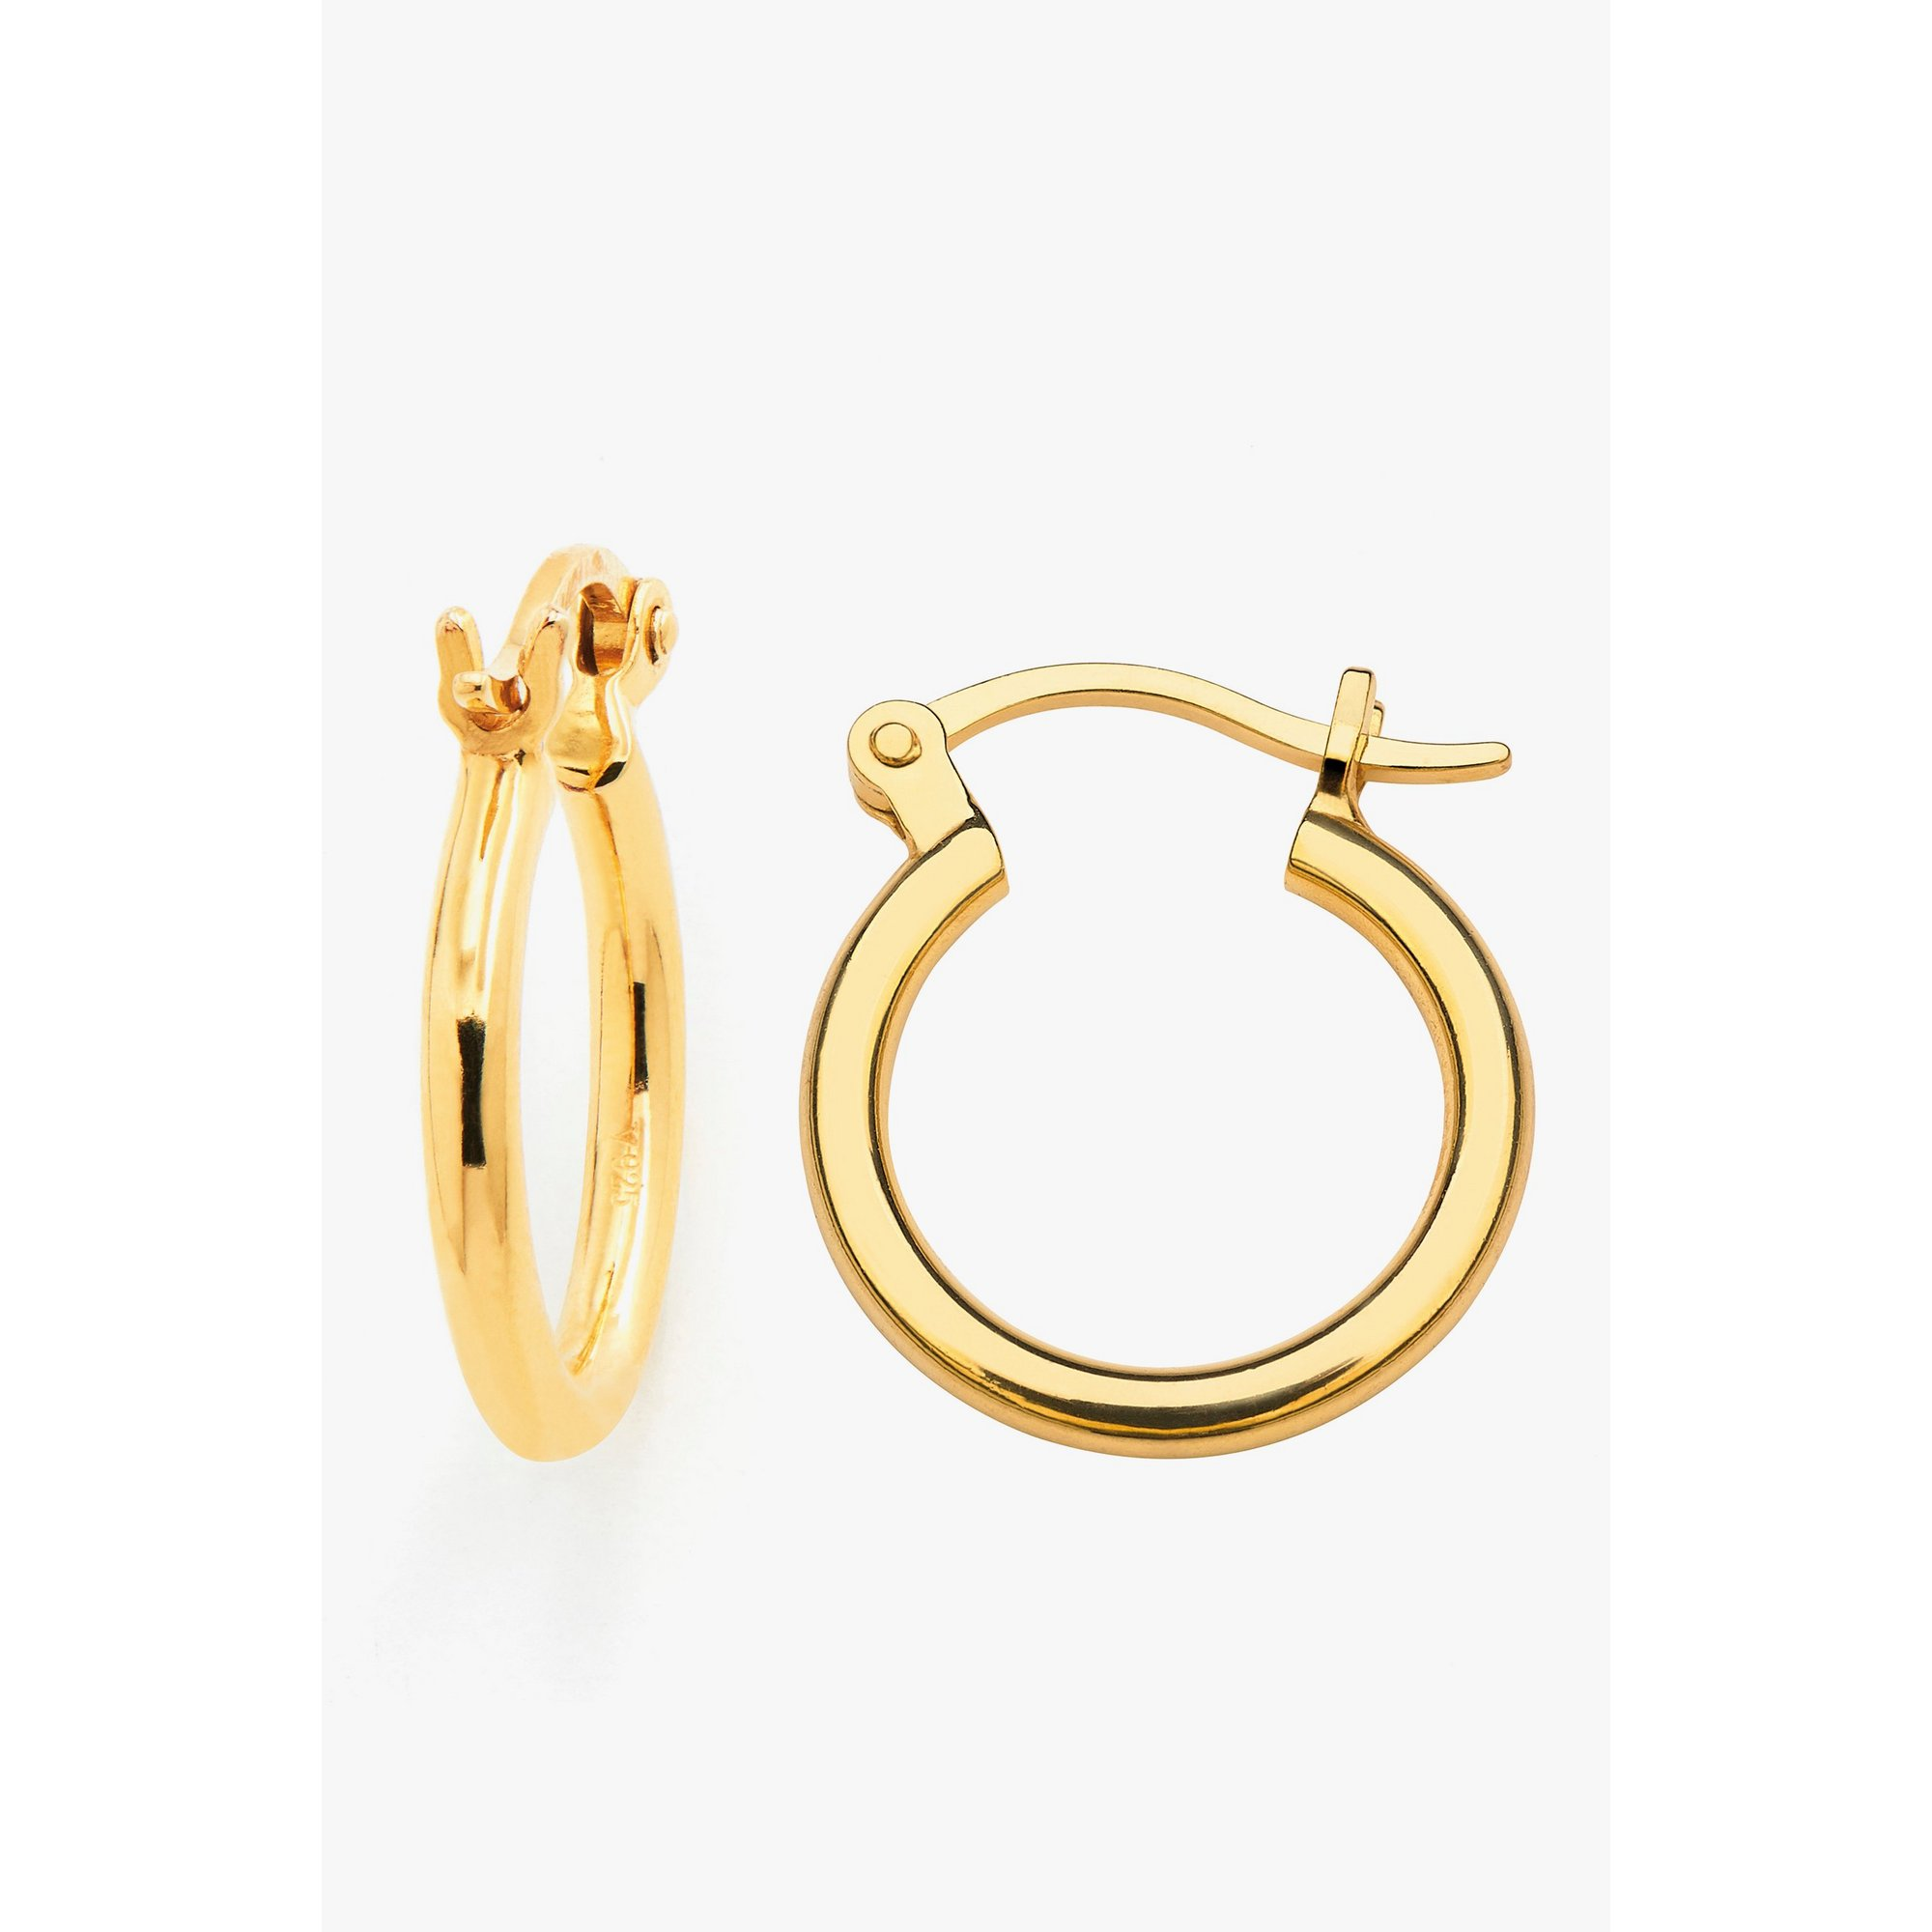 Image of Espree 12mm Gold Plated Hinged Hoop Earrings